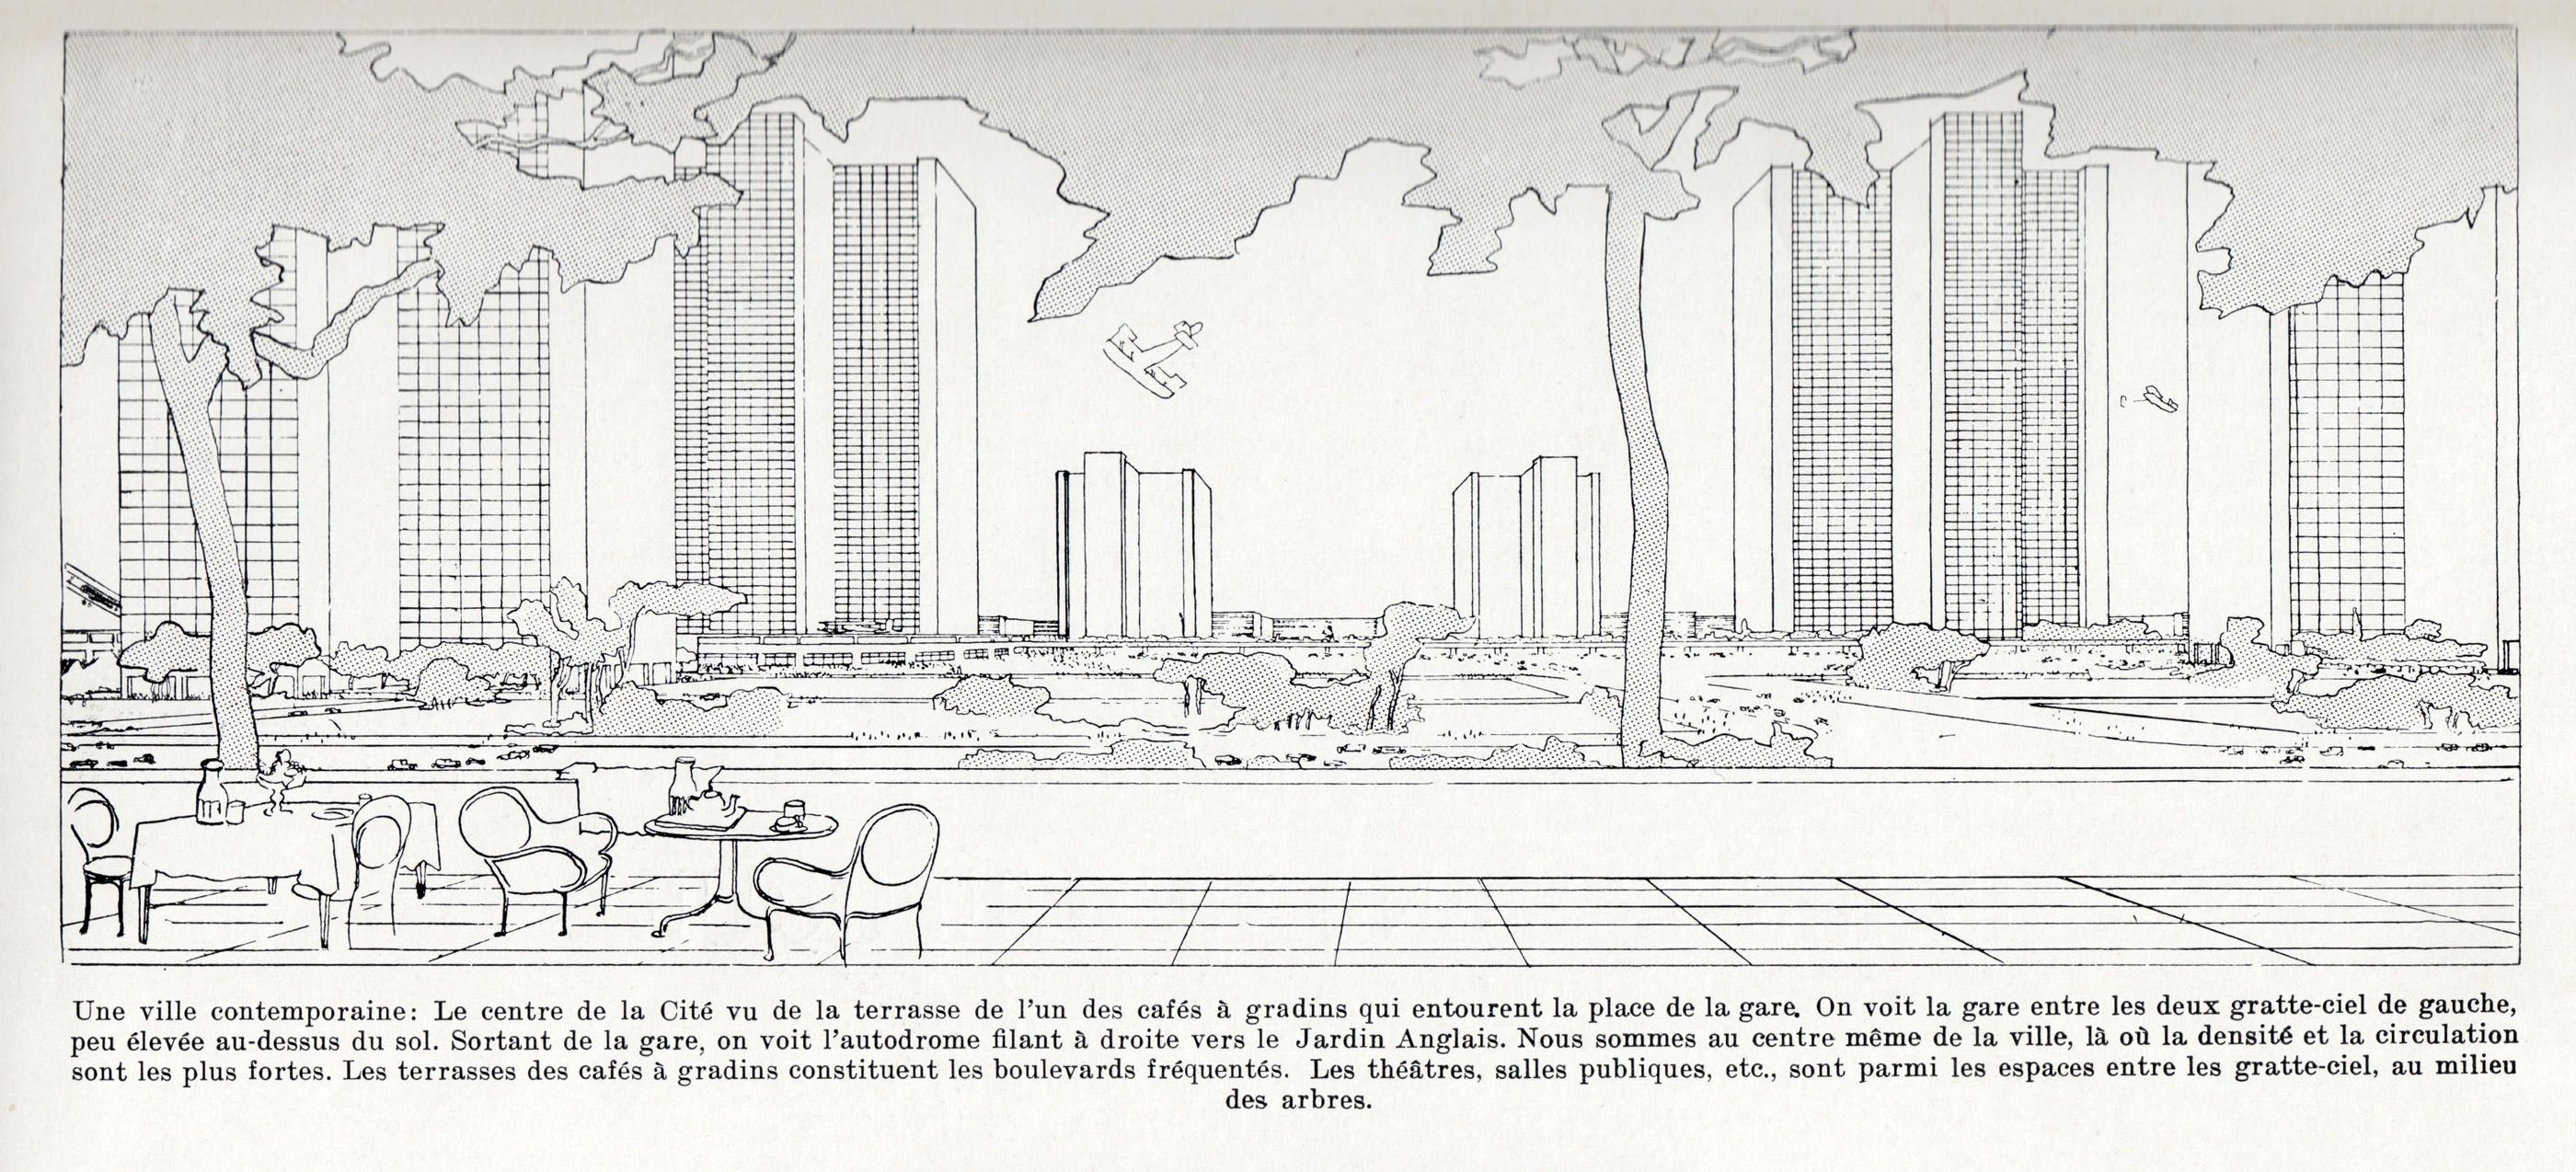 Le corbusier progetto per une ville contemporaine cerca for Piscine contemporaine